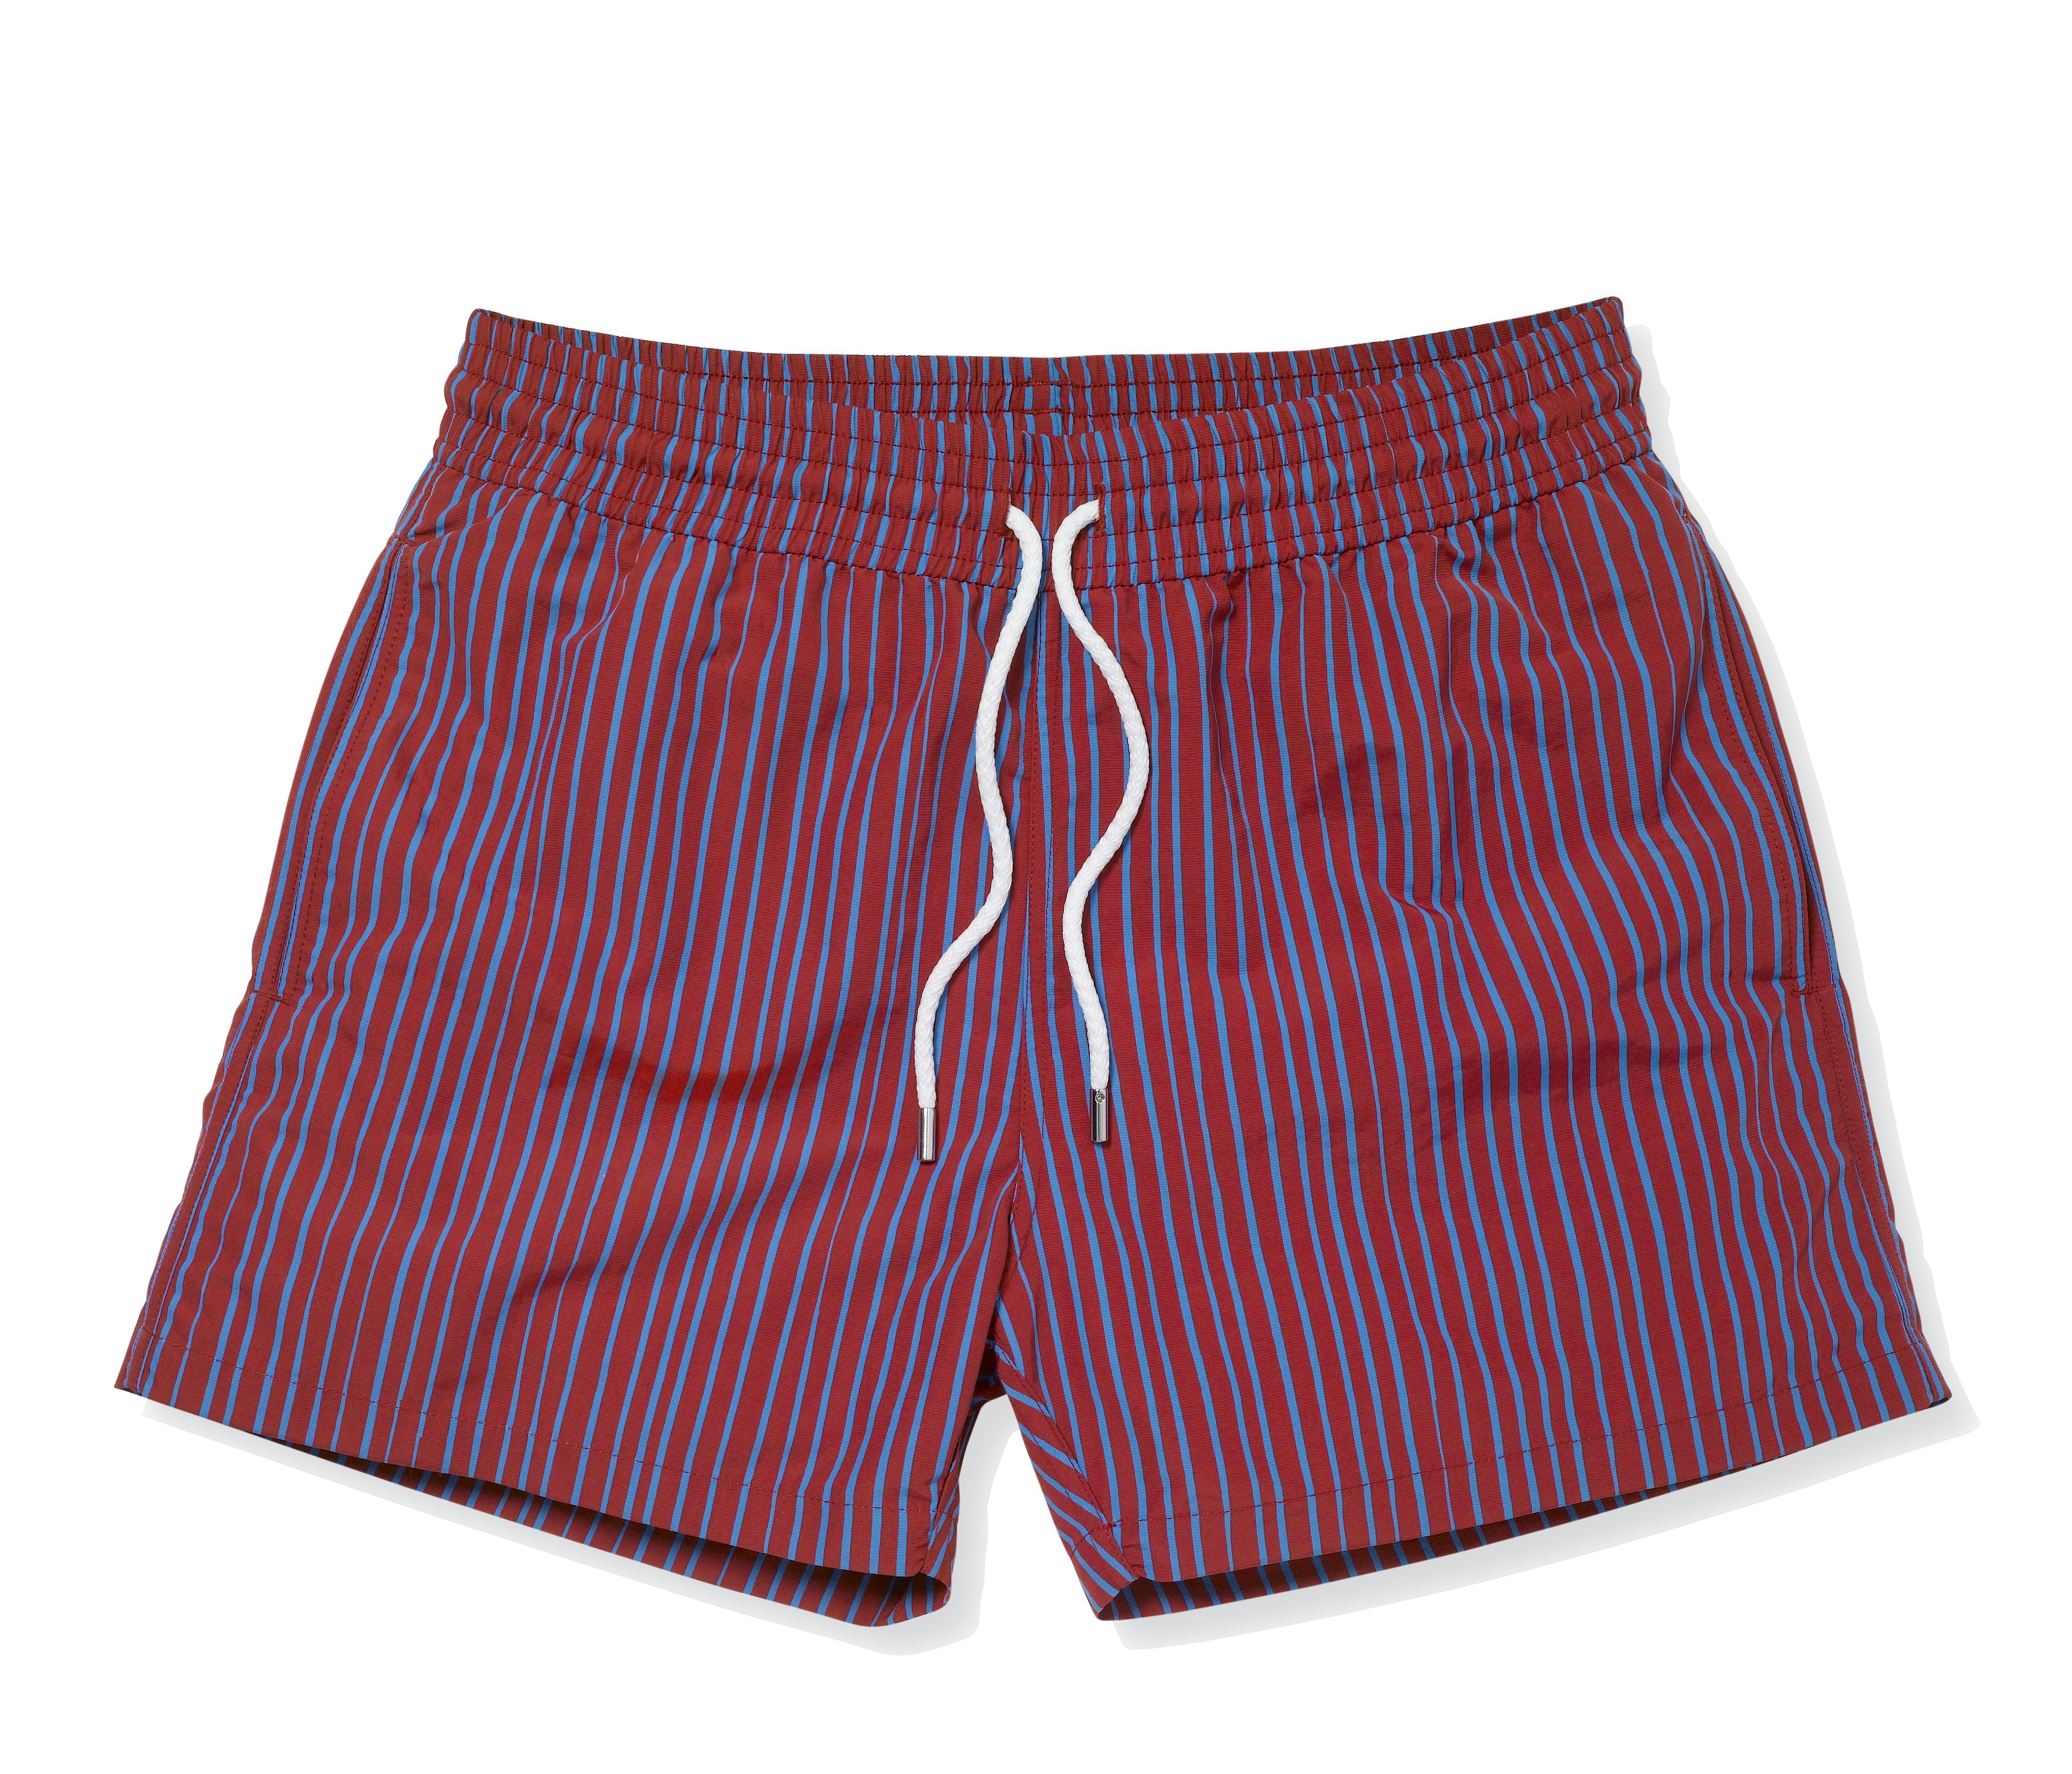 Sports Shorts Tracos Large Pitanga Red_Bright Blue.jpg